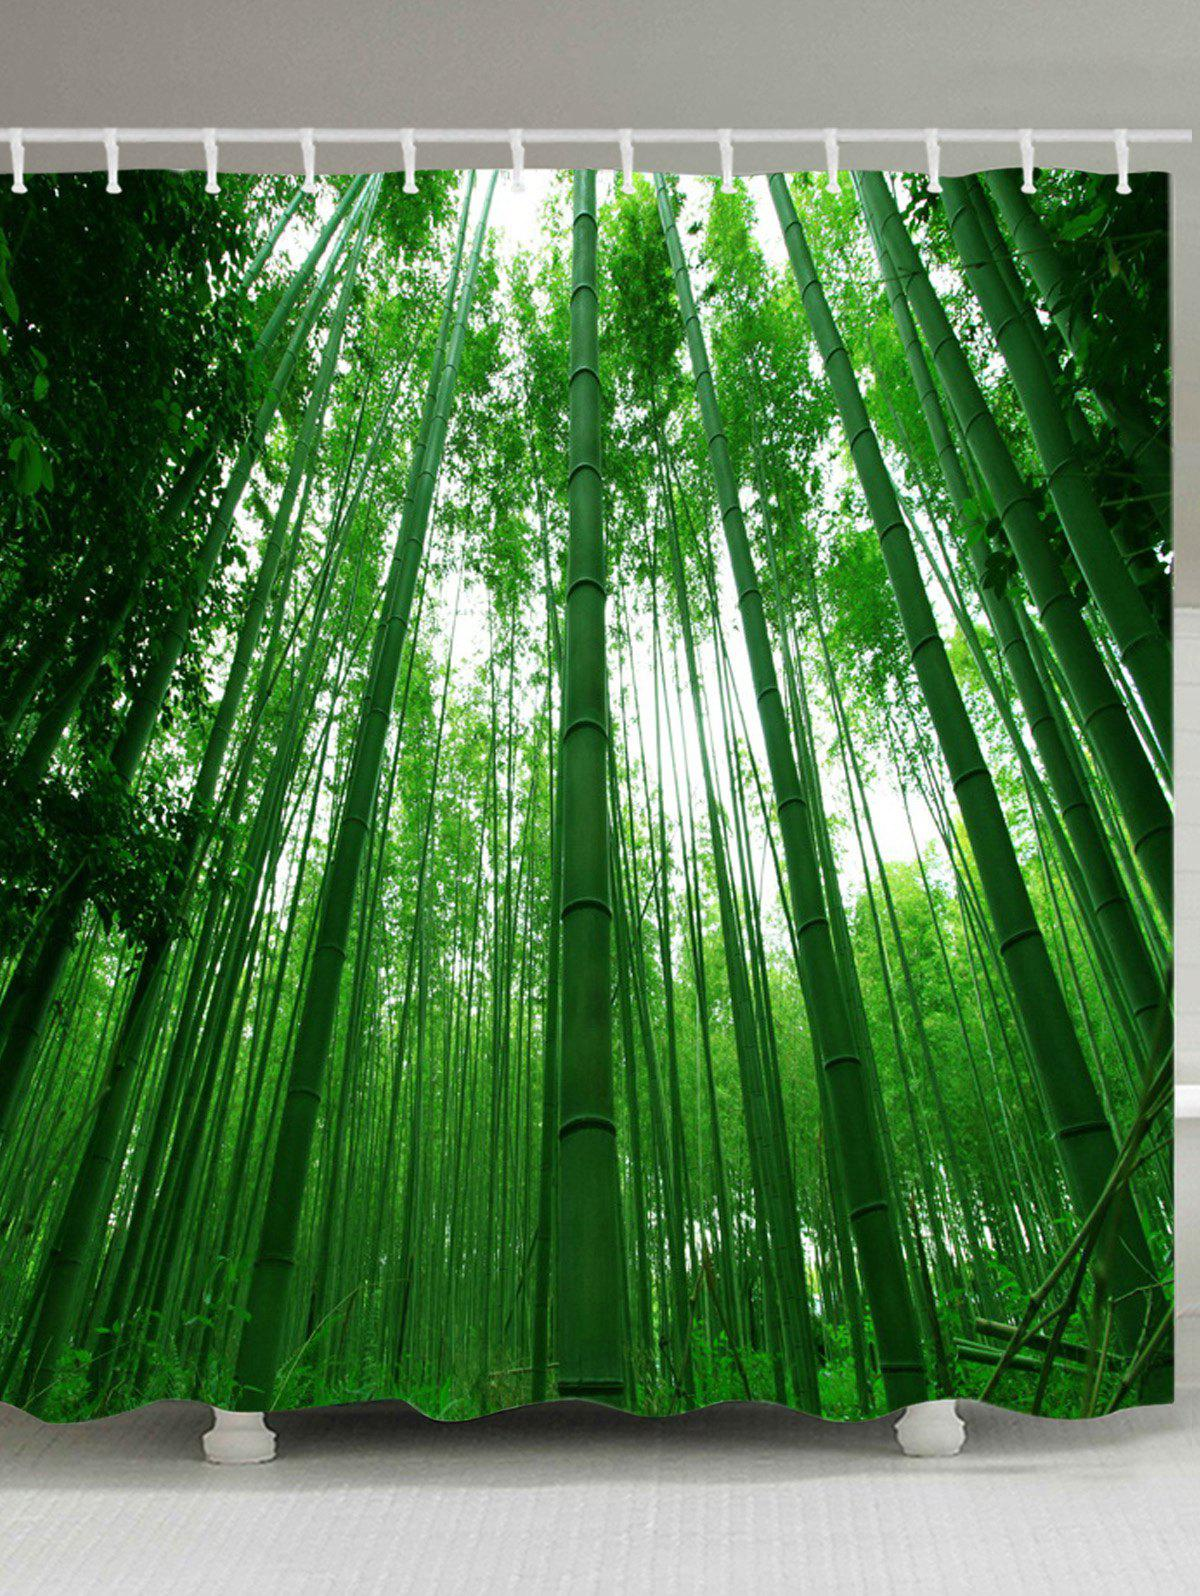 Unique Bamboo Forest Pattern Waterproof Bathroom Shower Curtain